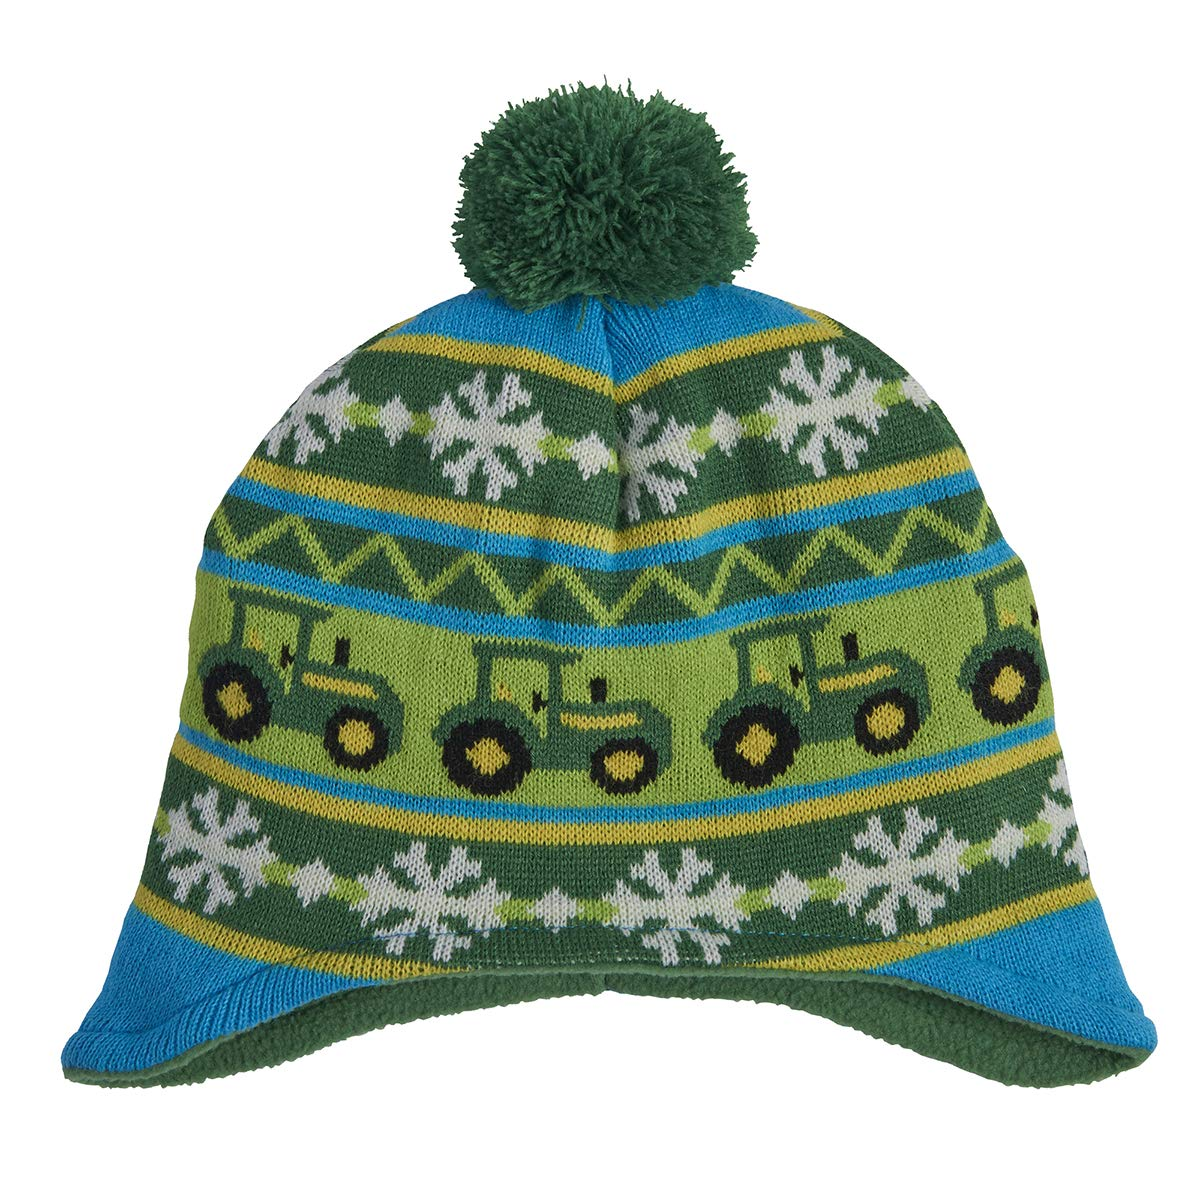 John Deere Boys' Little Winter Hat, Green/Yellow, Toddler John Deere Children' s Apparel JFH901GT